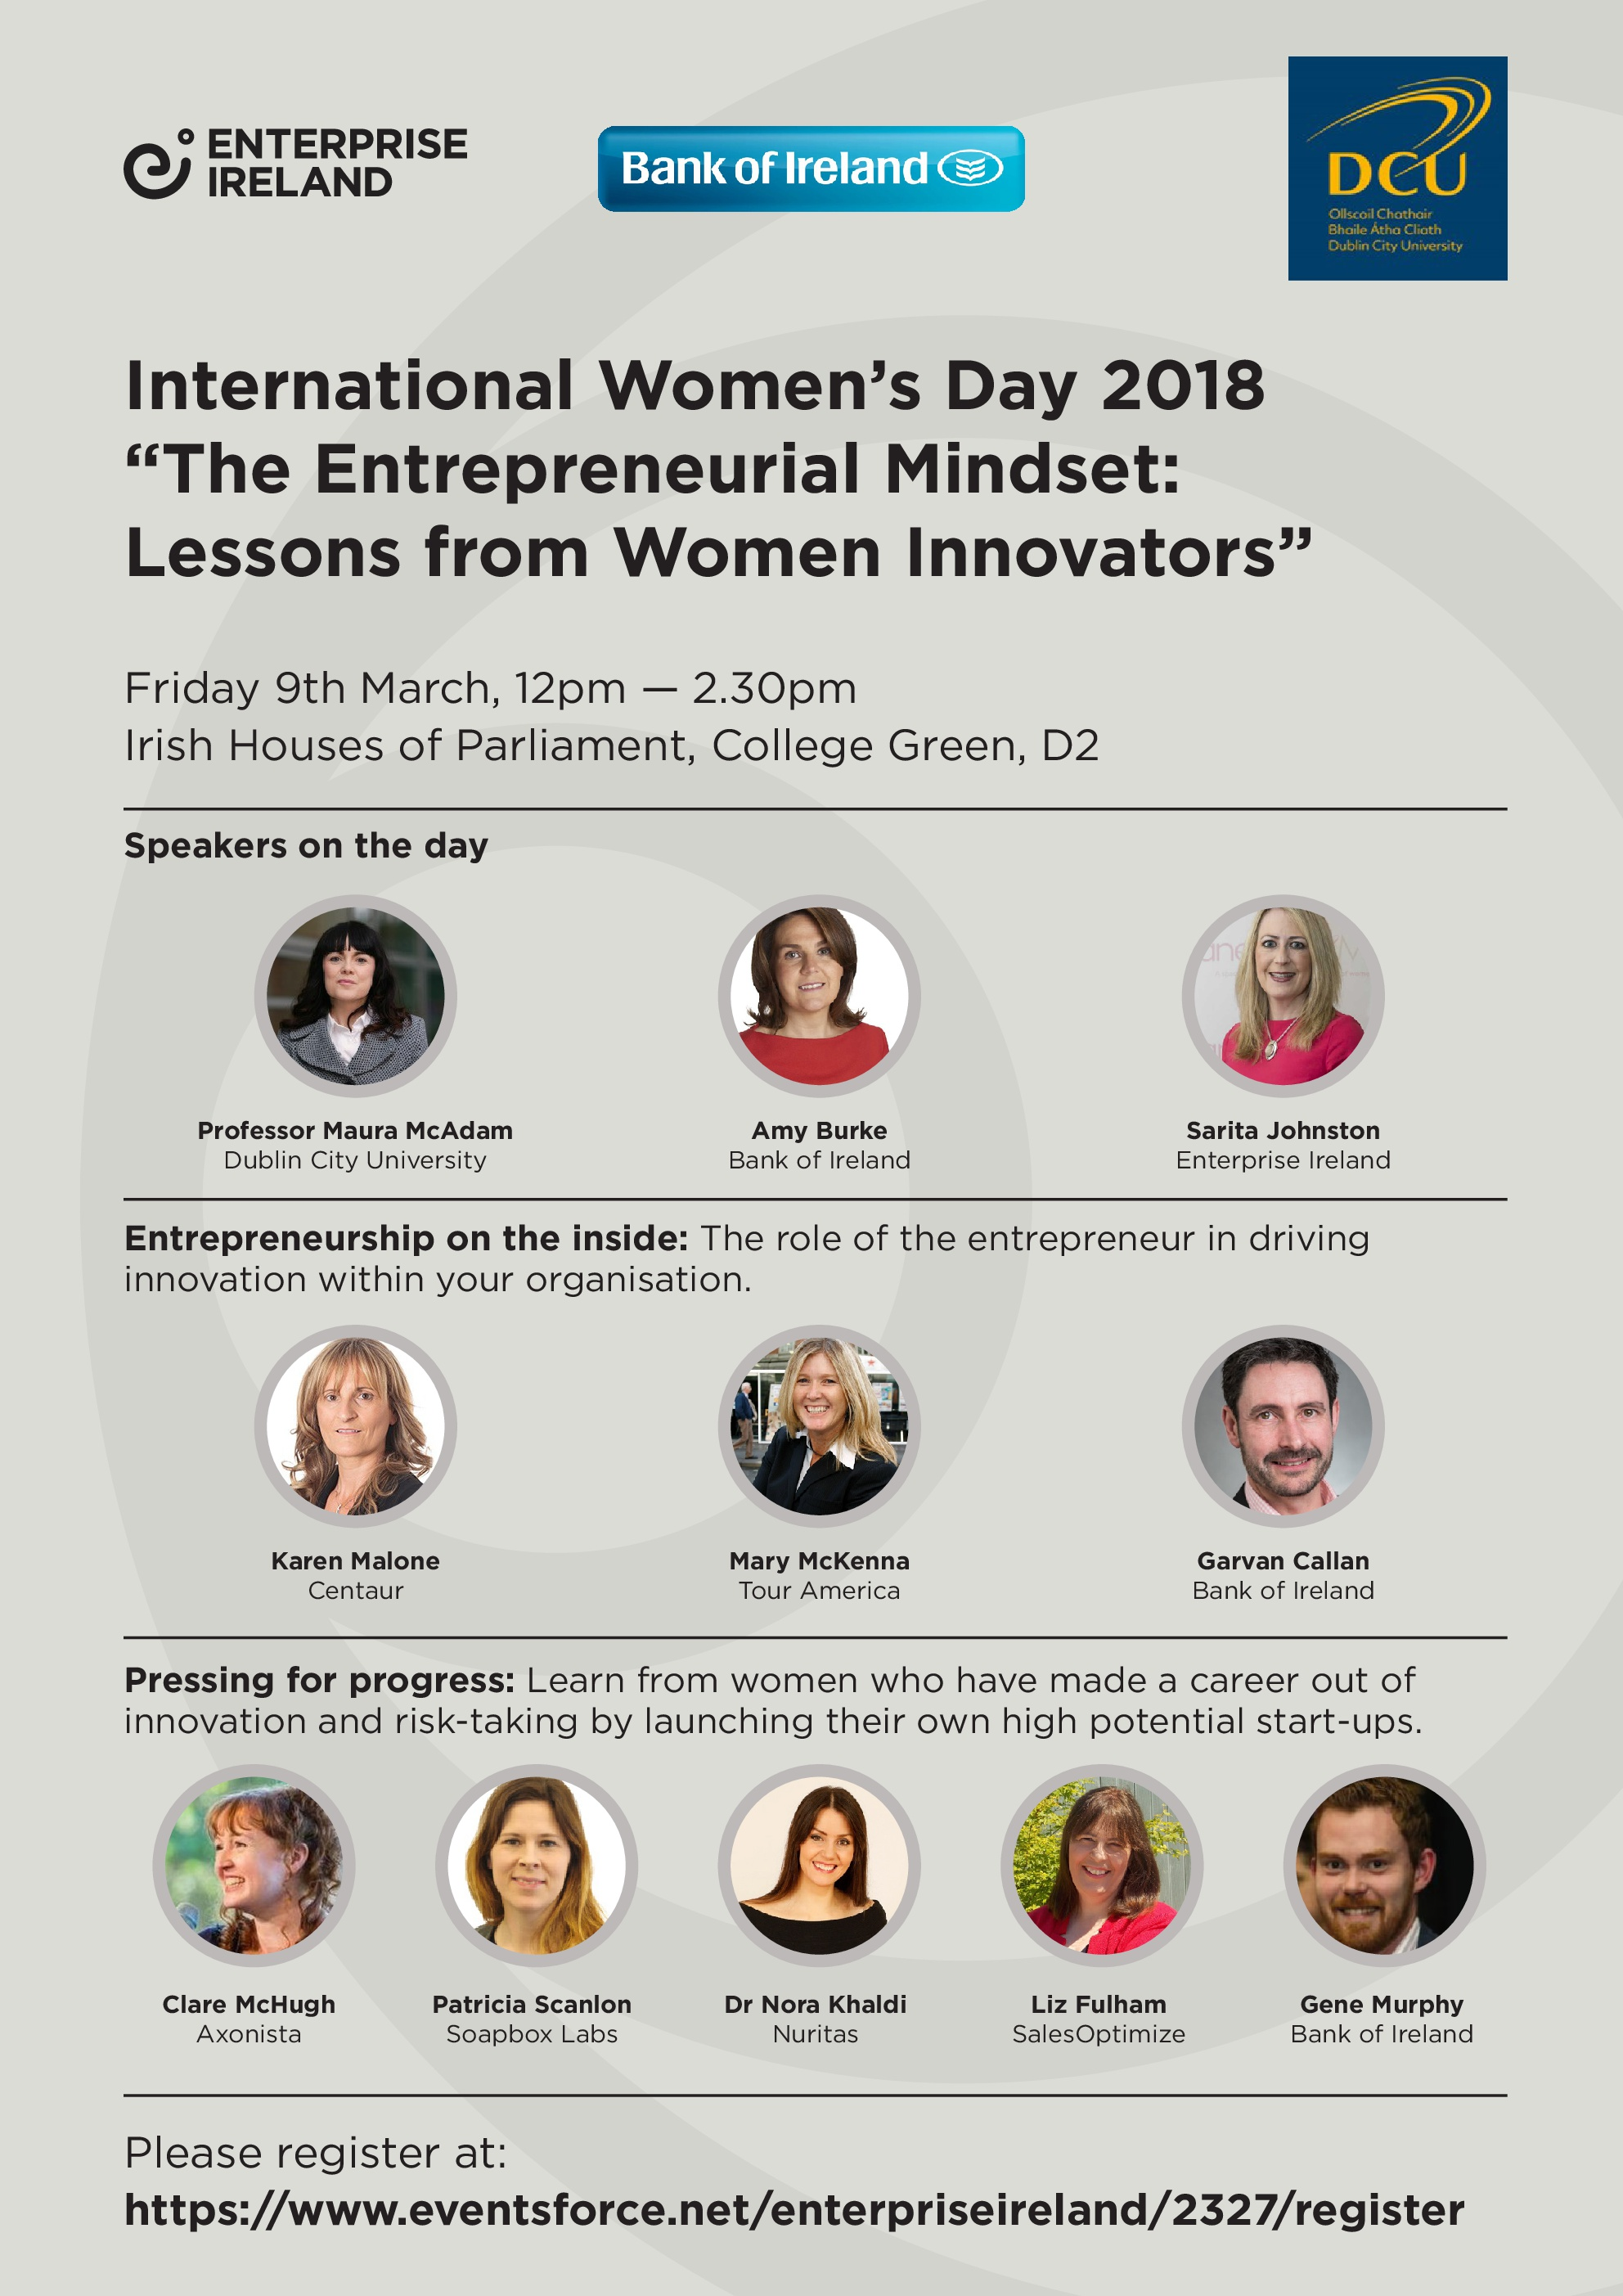 International Womens Day Invite image